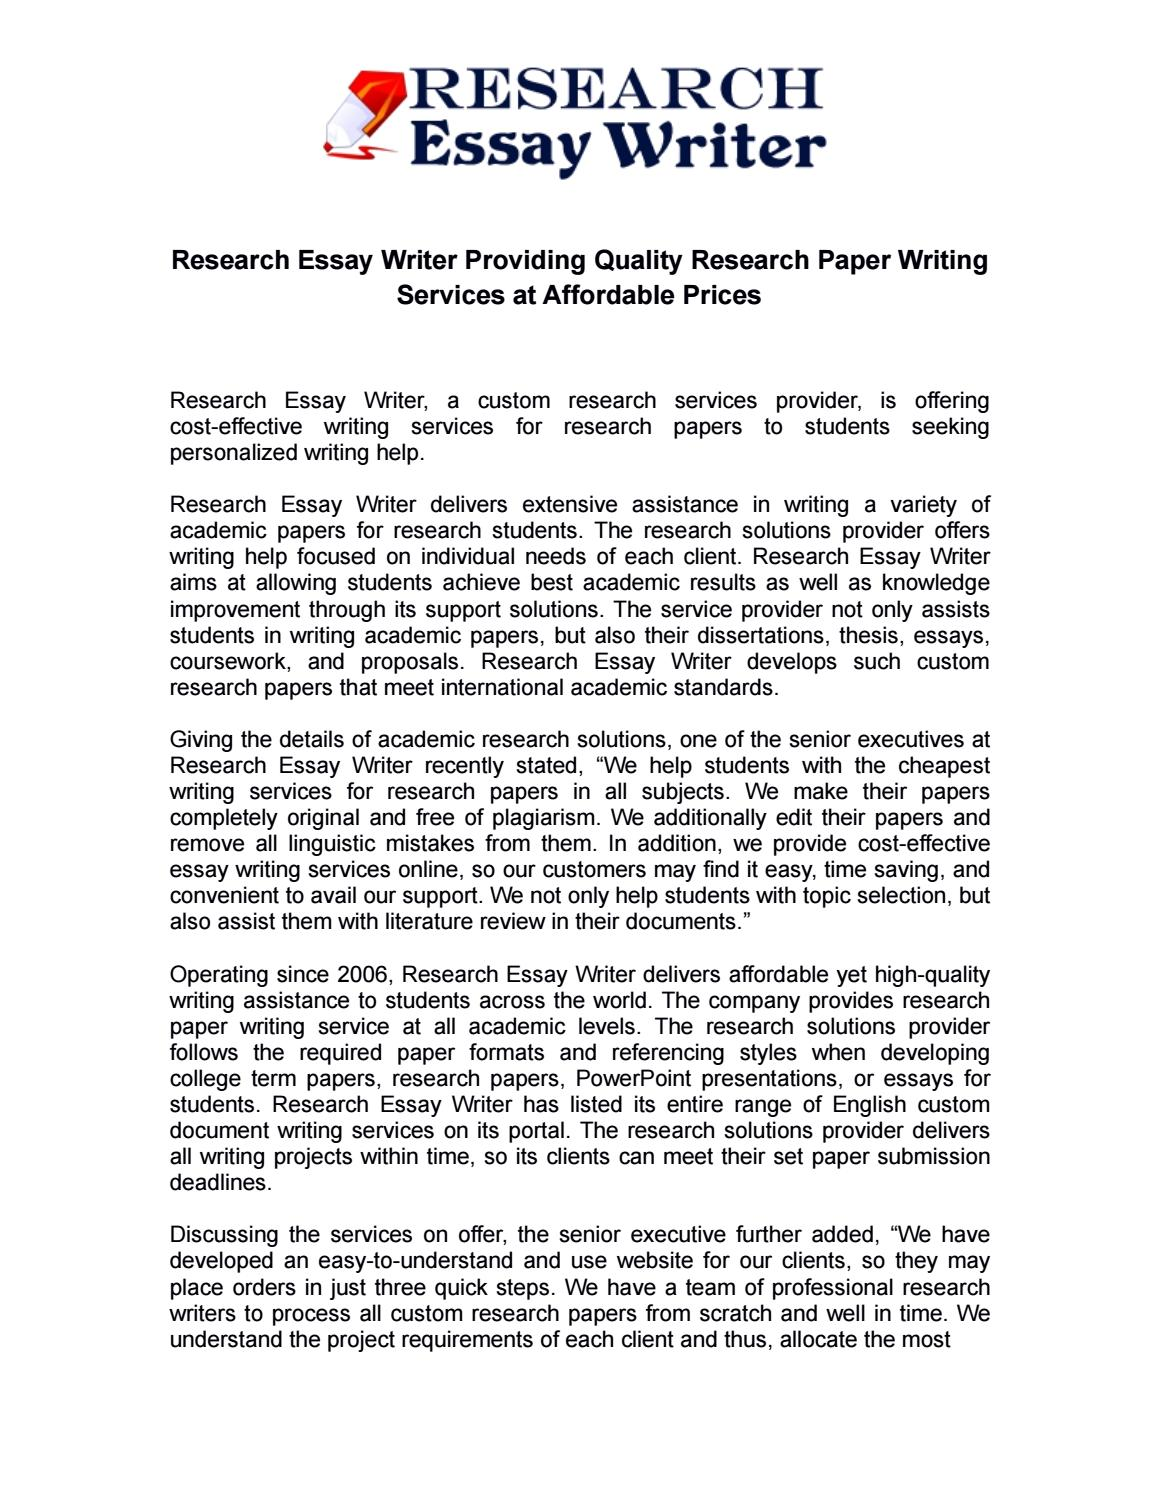 007 Cheapest Research Paper Writing Service Page 1 Wondrous Full